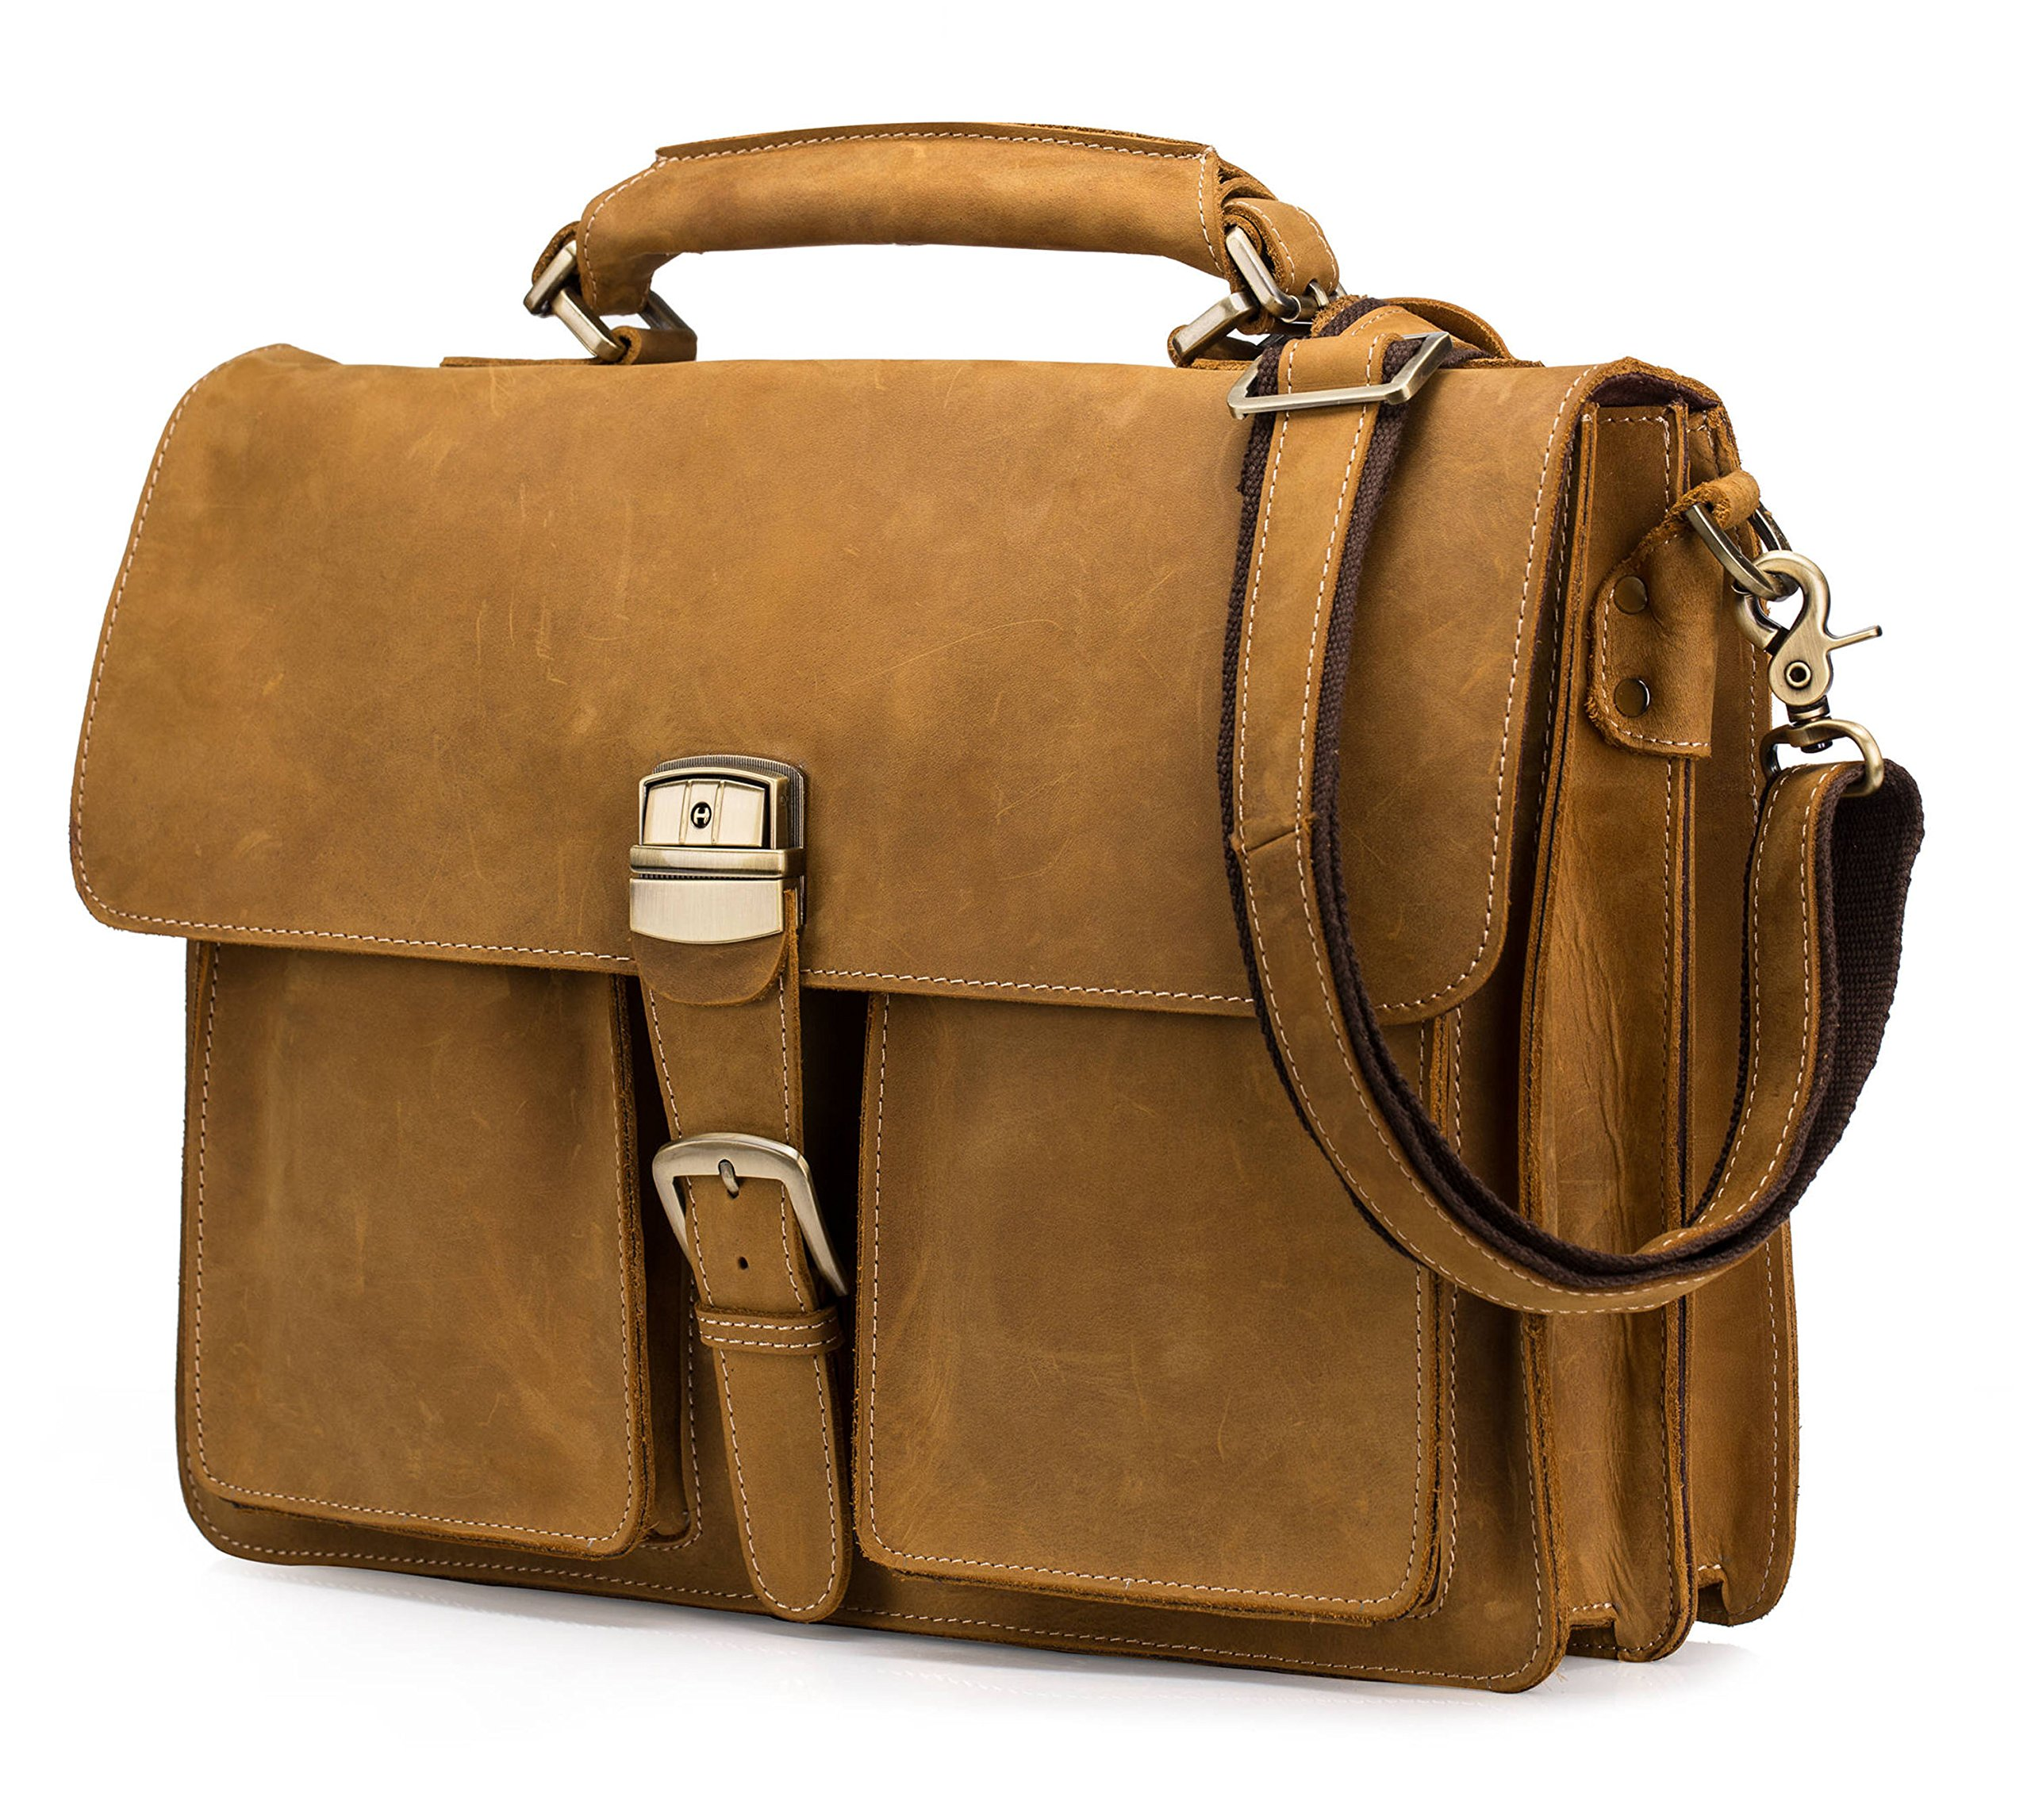 BAIGIO Leather Briefcase Designer Retro Messenger Bag Travel Handbag 15'' Laptop Shoulder Tote (Tan Brown)